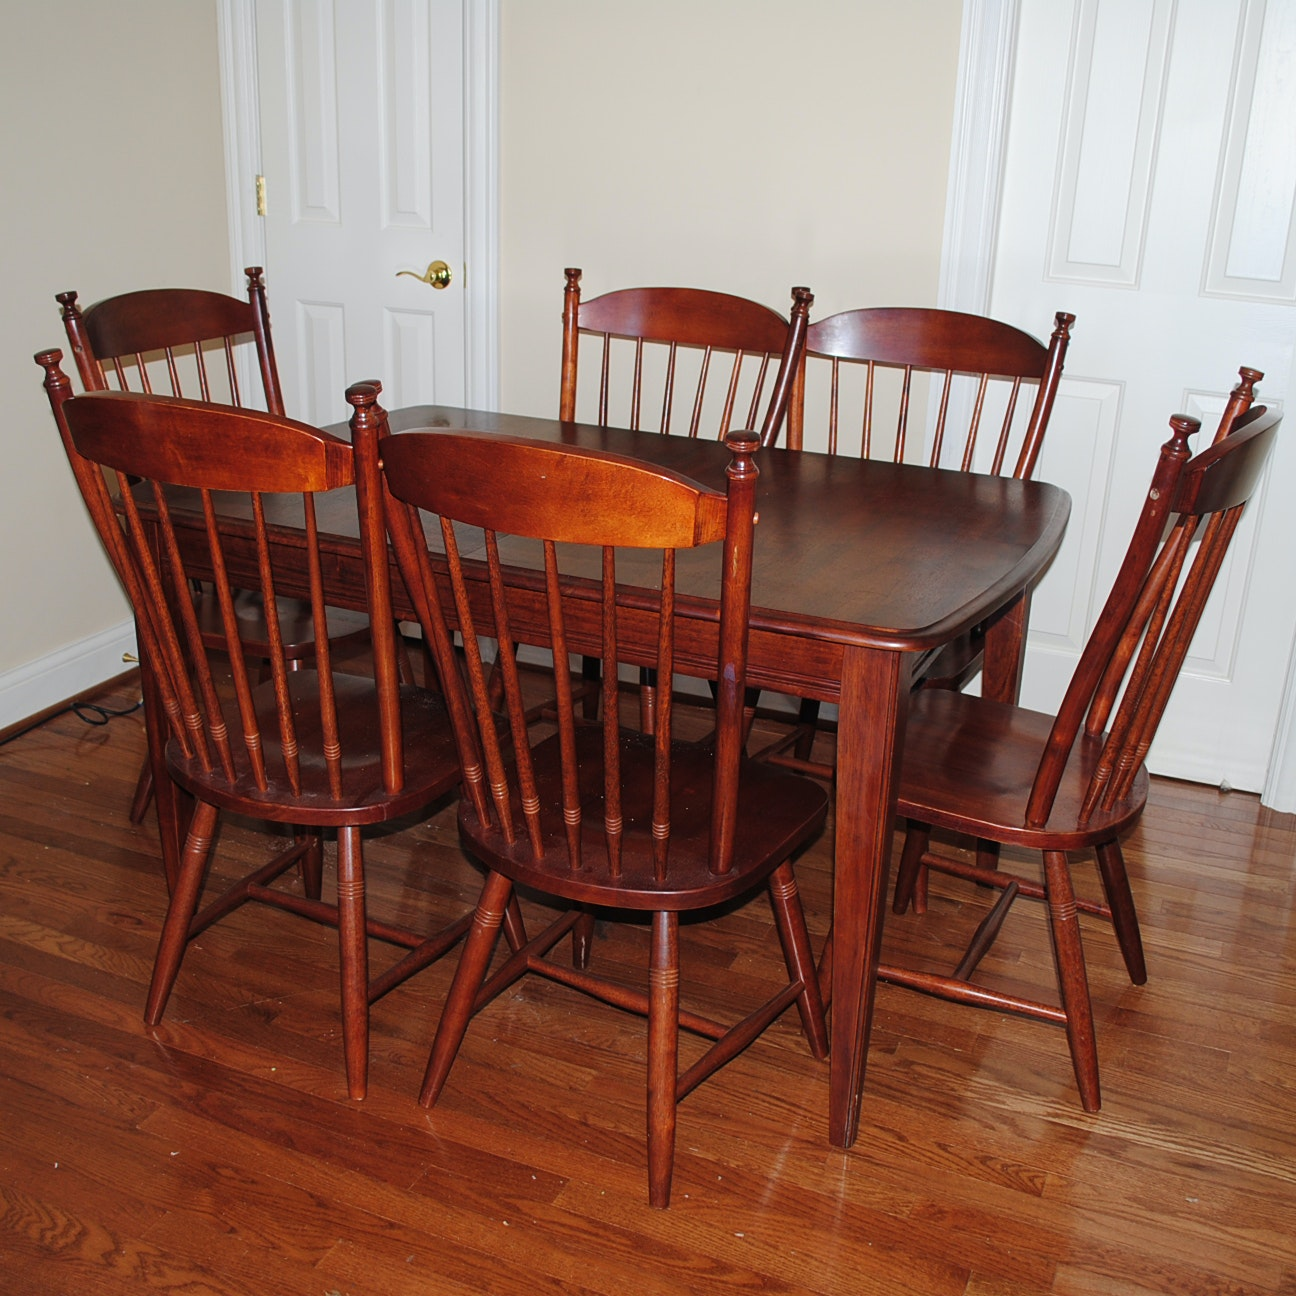 Dining Table with Windsor Style Chairs